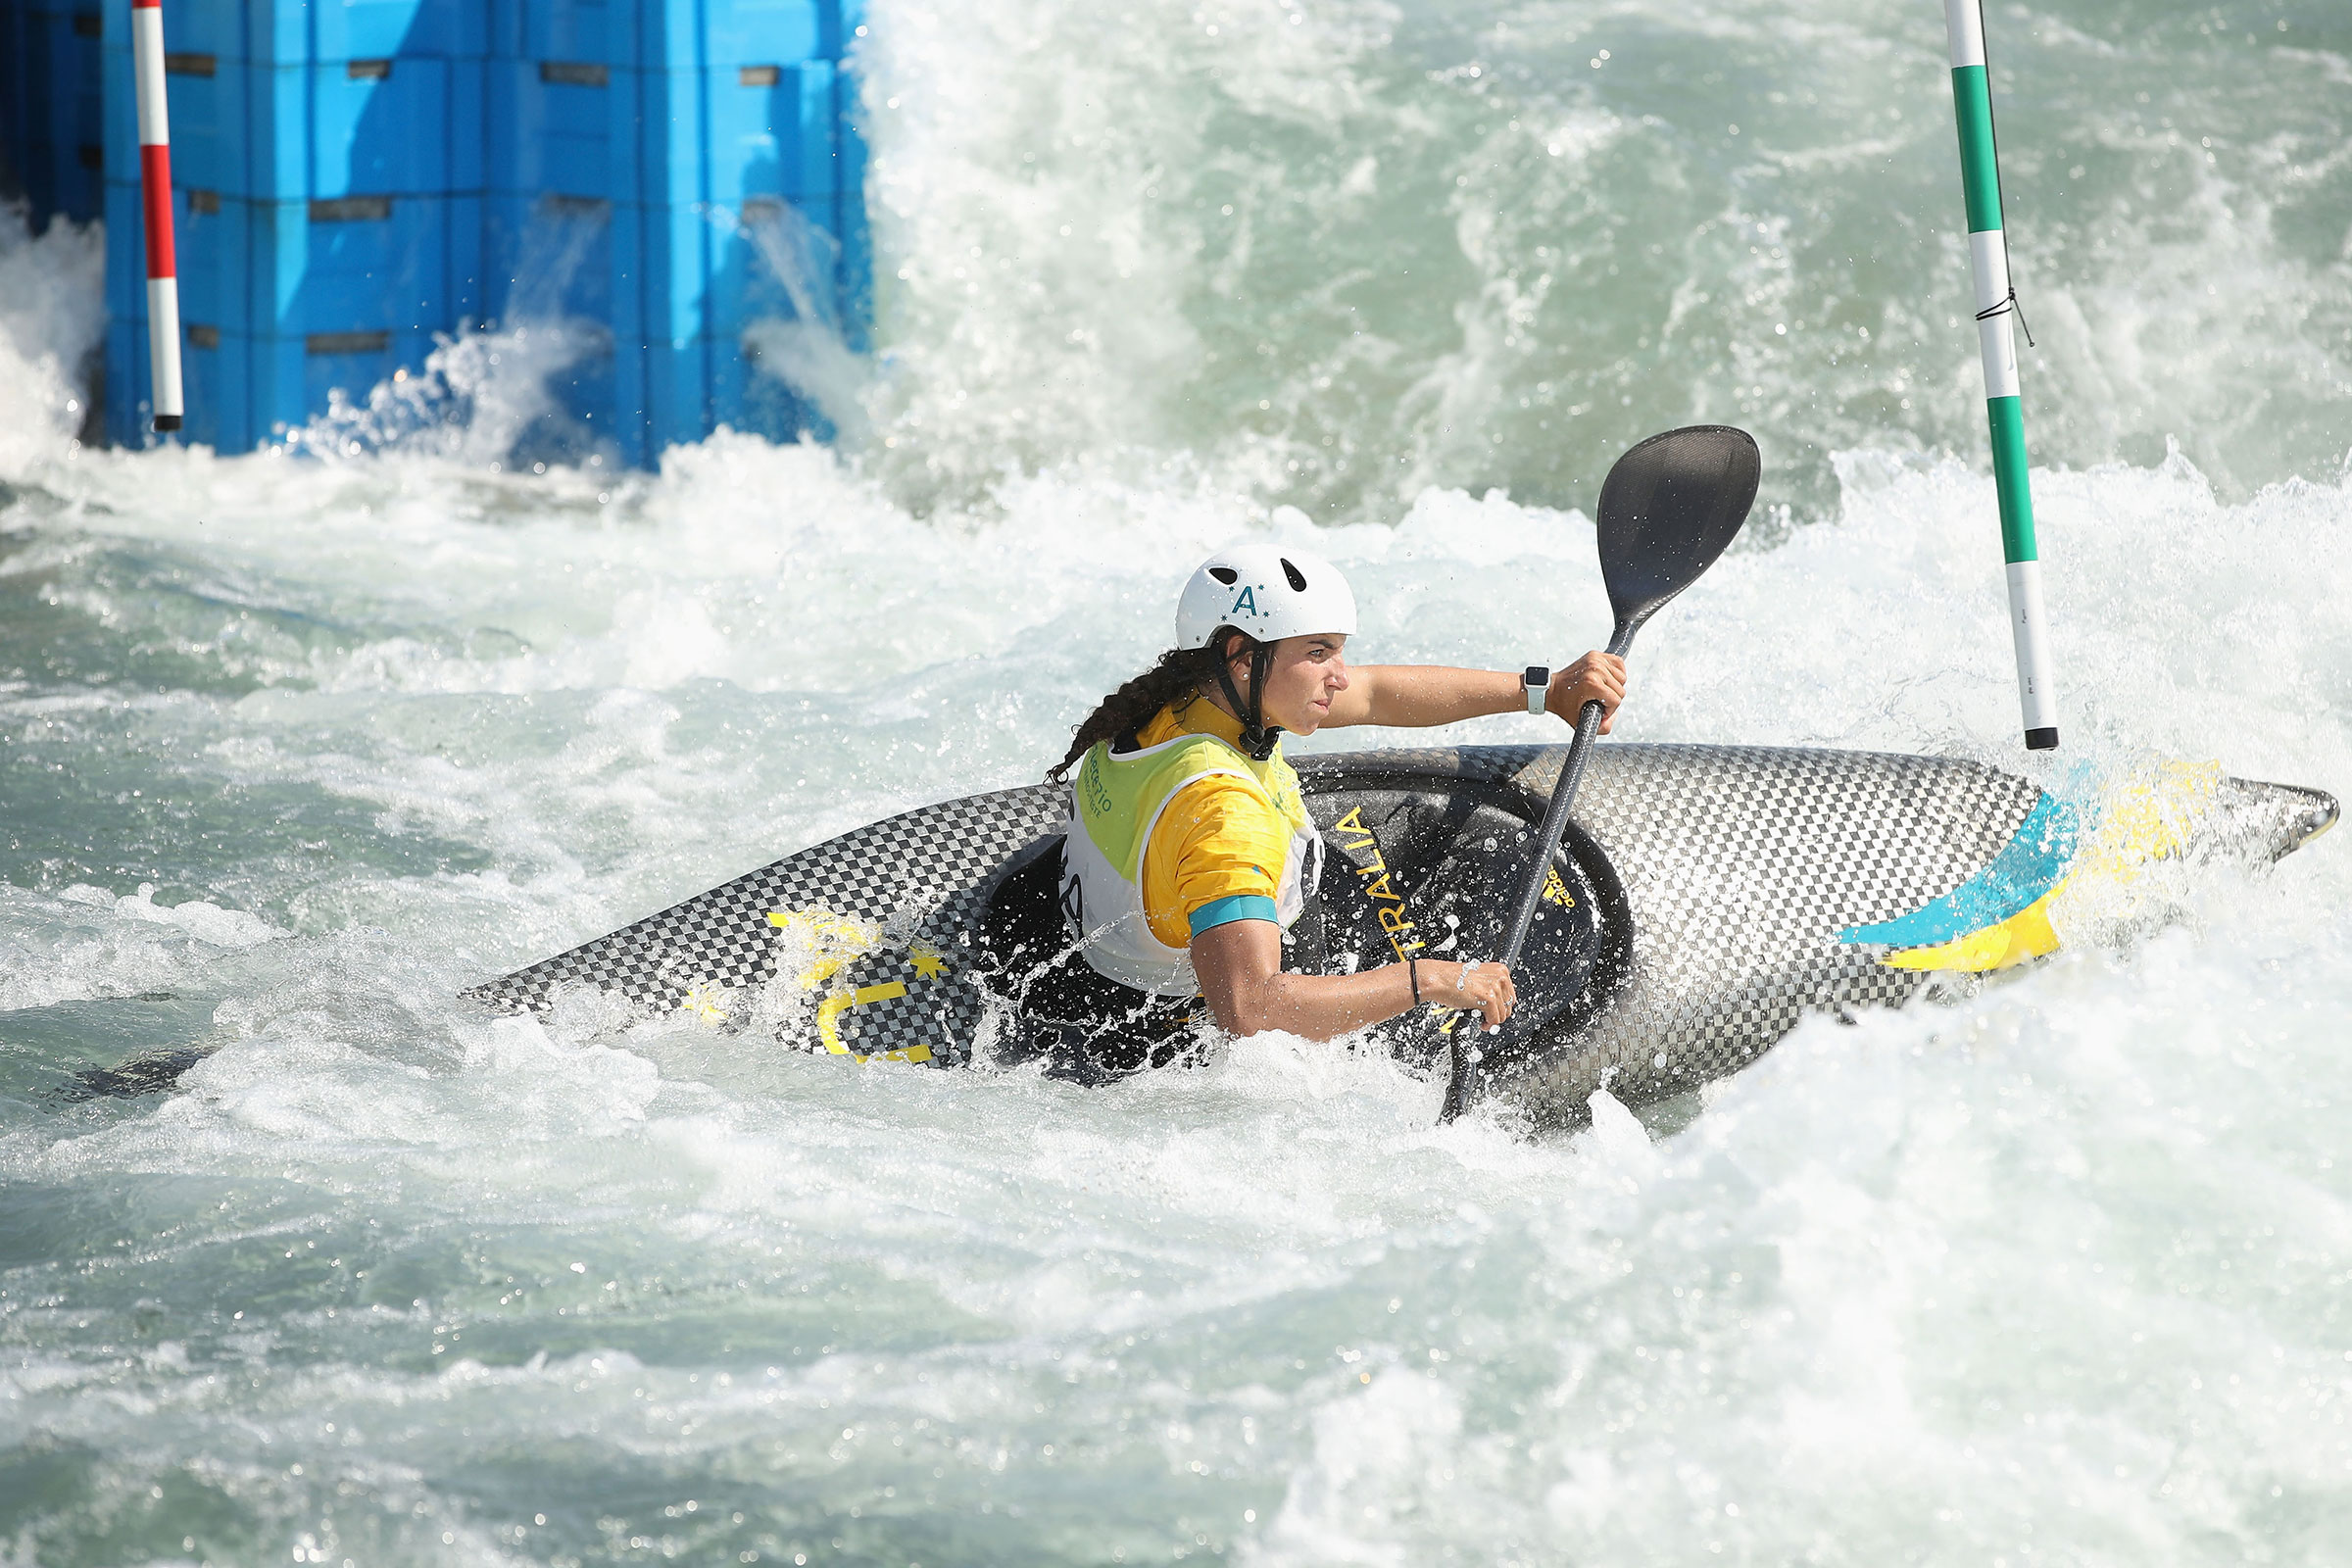 Canoe Slalom training